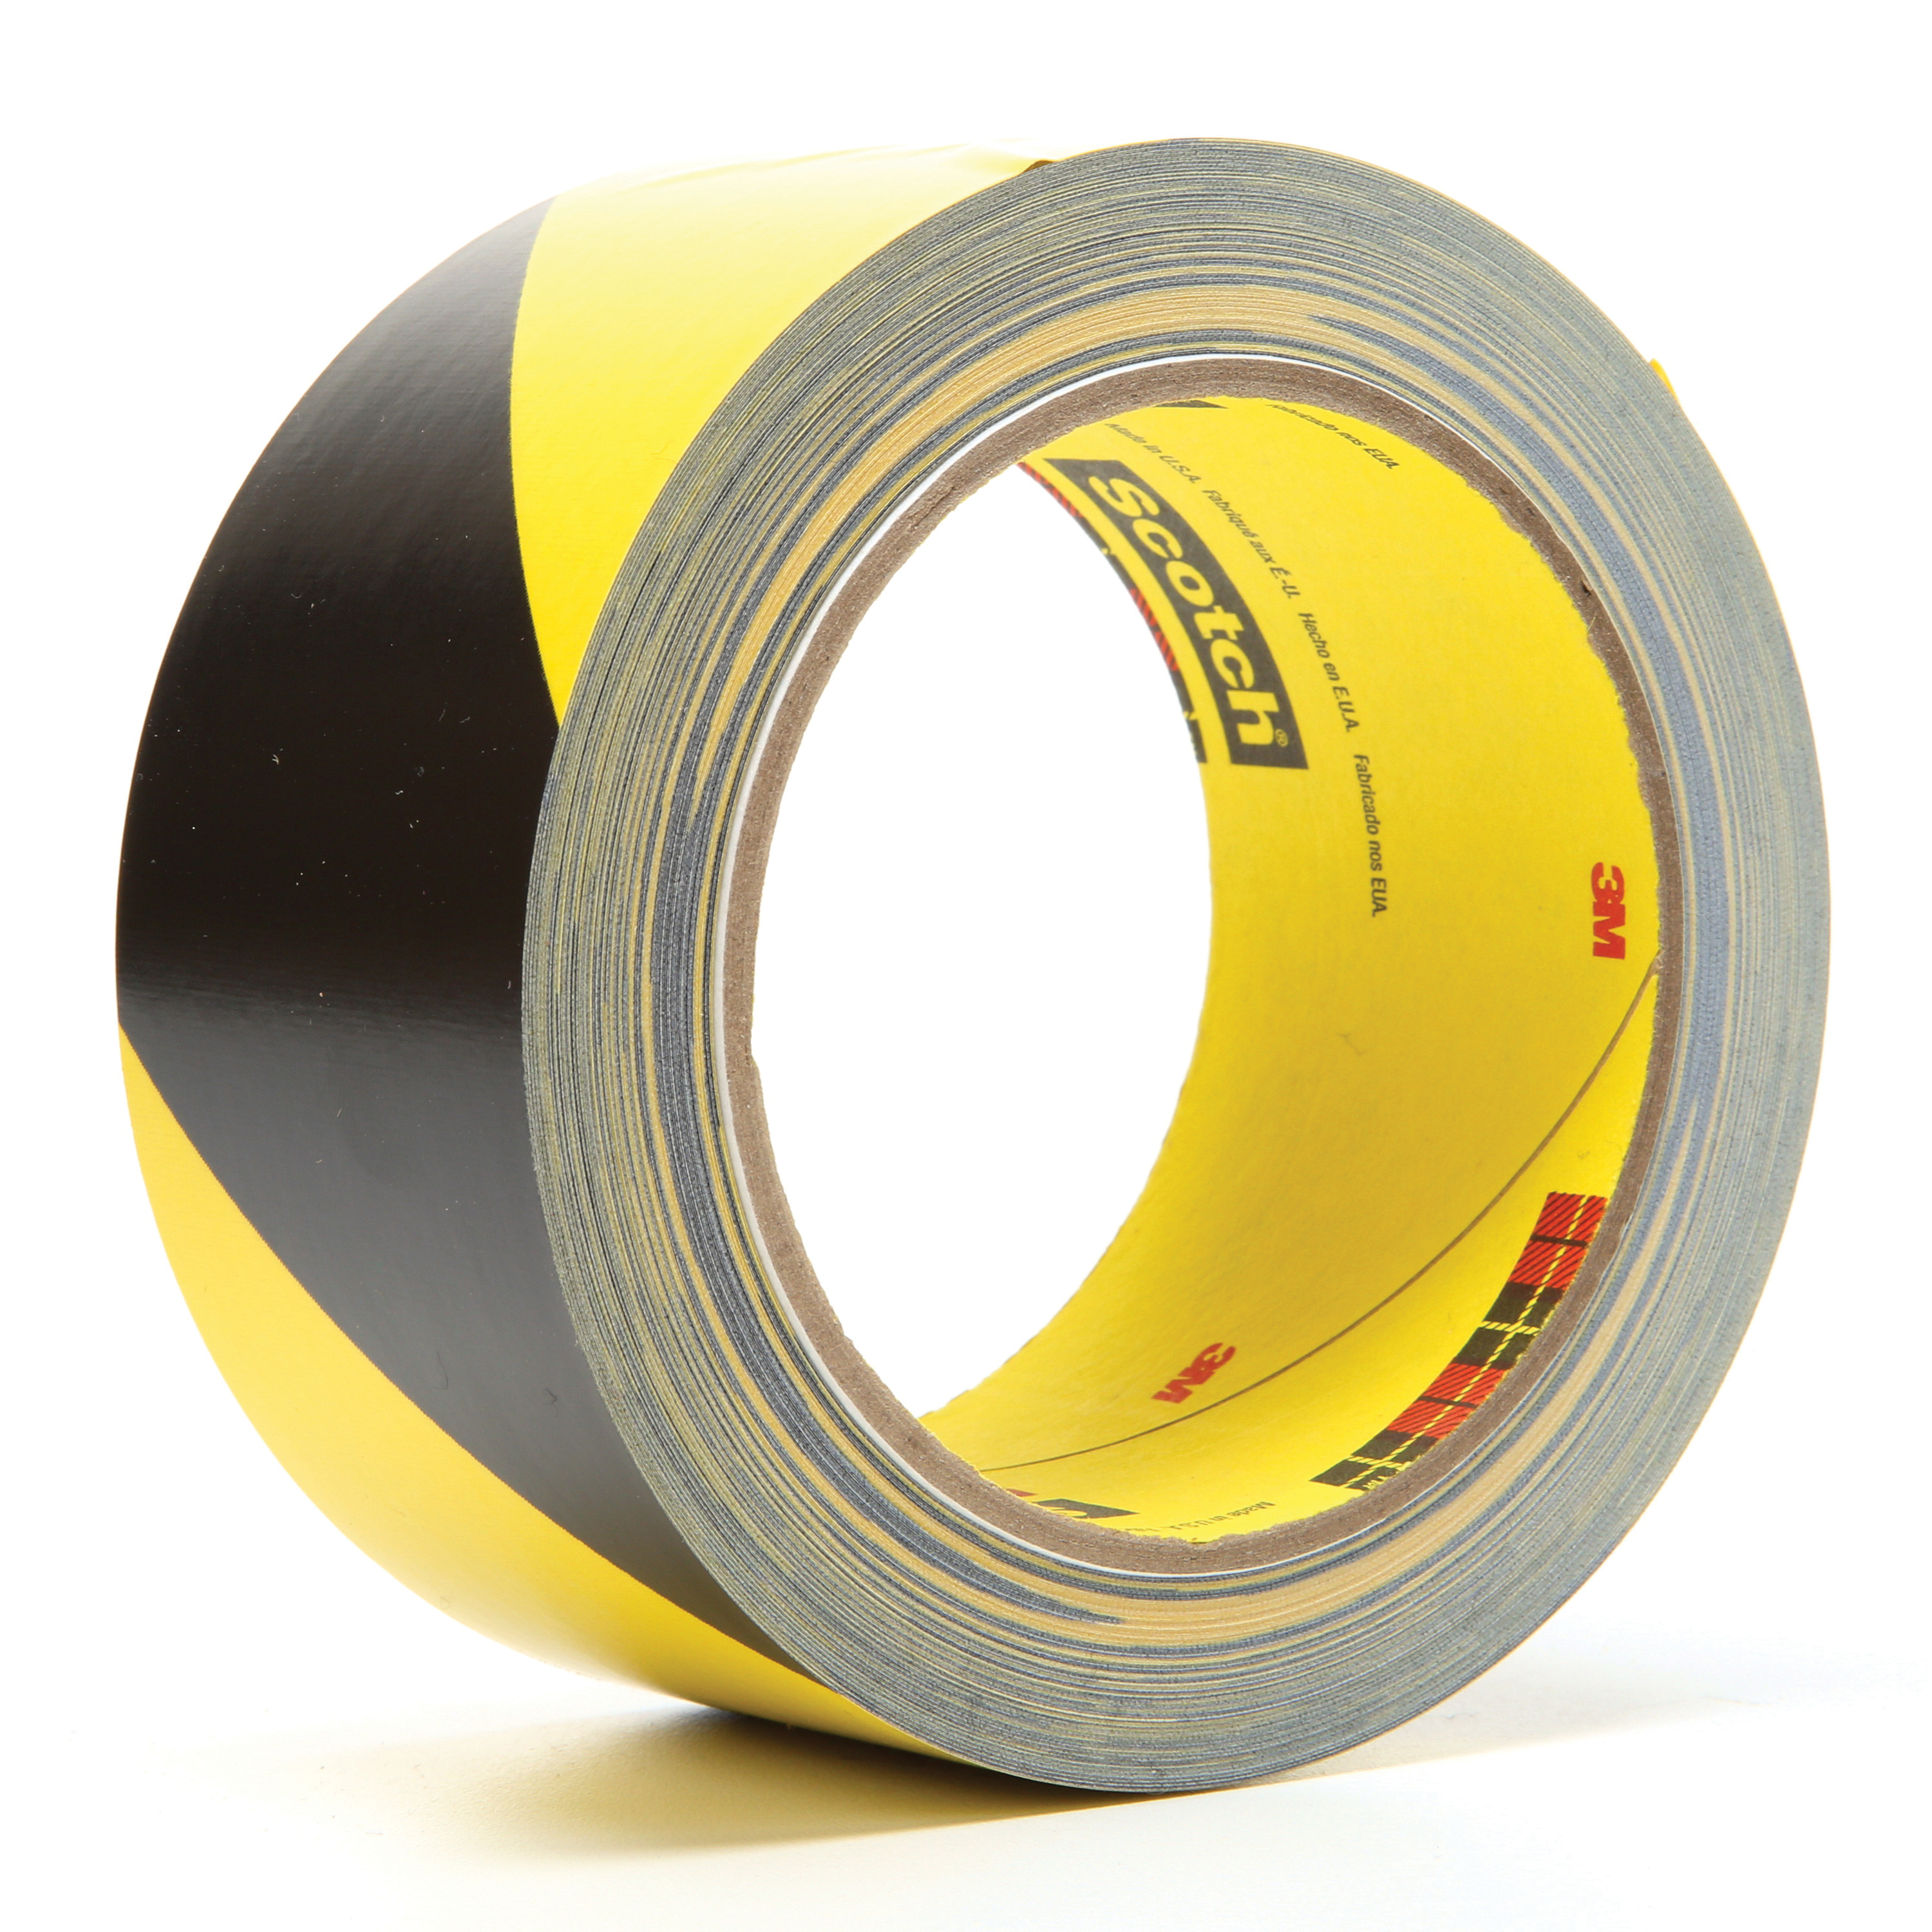 3M™ 021200-04585 Safety Stripe Tape, 36 yd L x 2 in W, Black/Yellow, Rubber Adhesive/Vinyl Backing